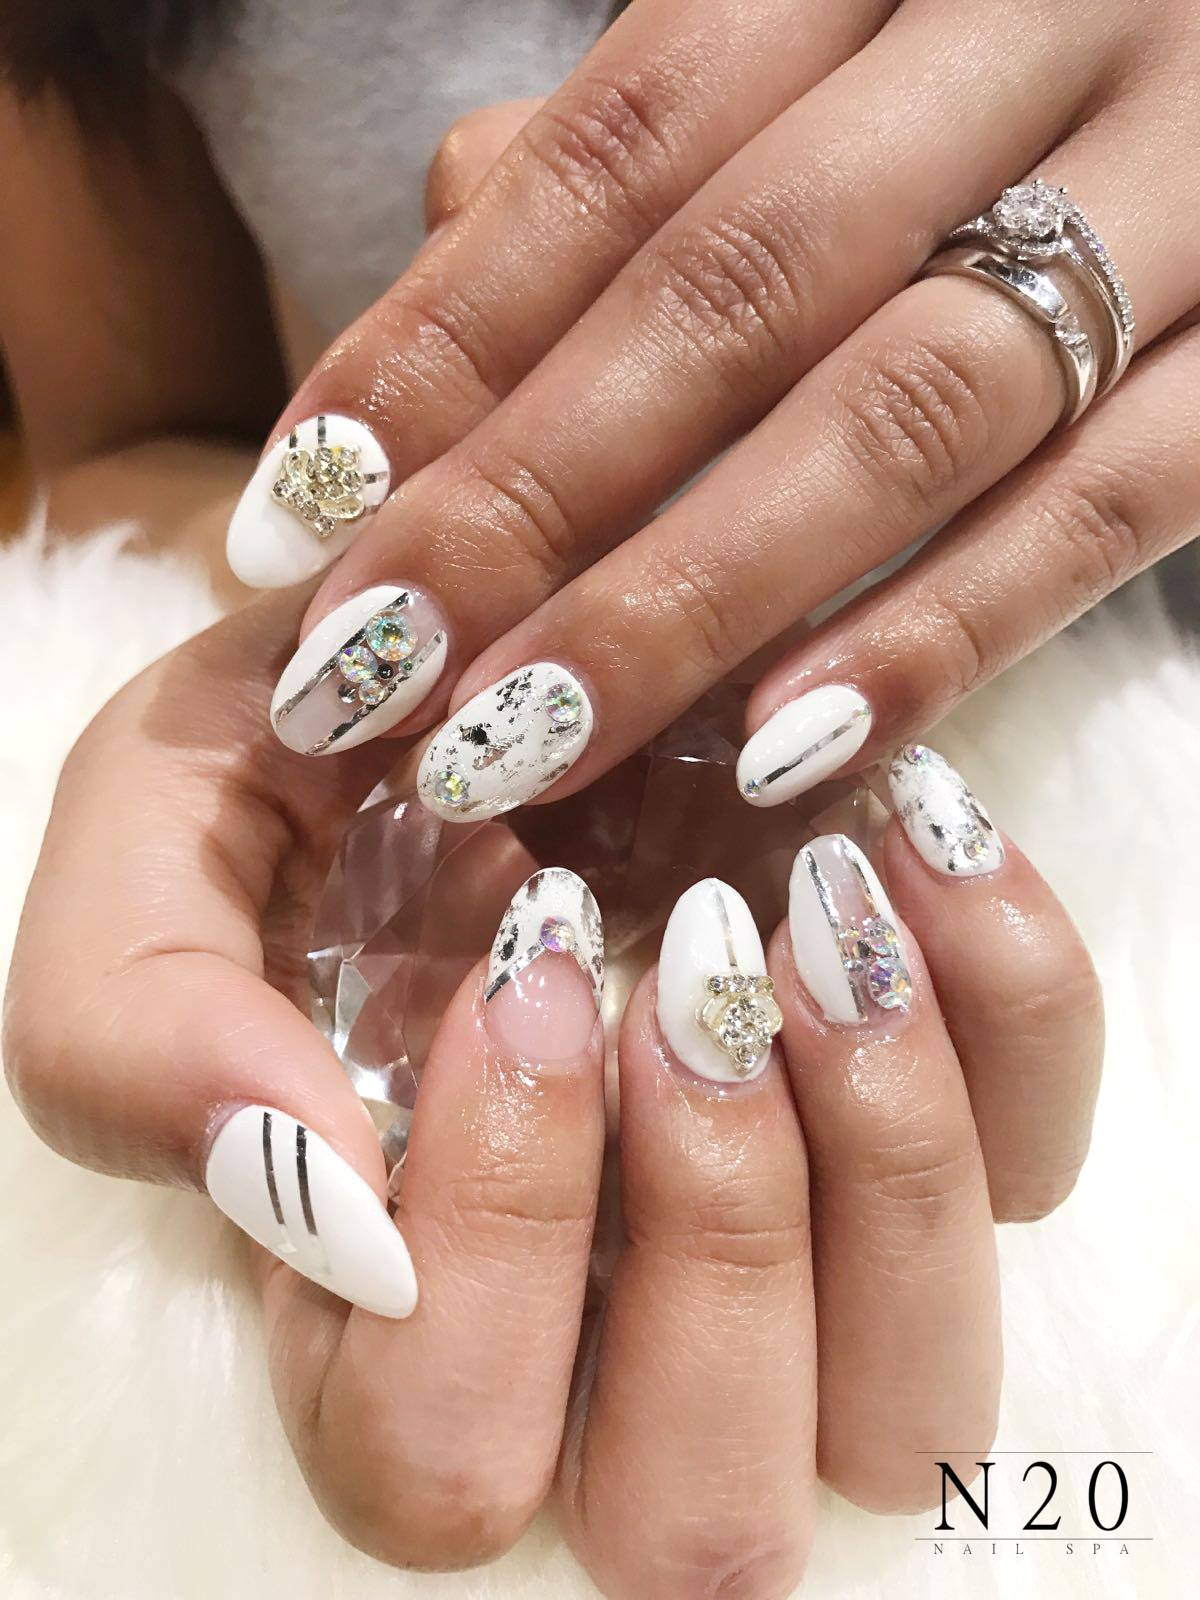 White and silver with jewel stud manicure nail art - N20 Nail Spa